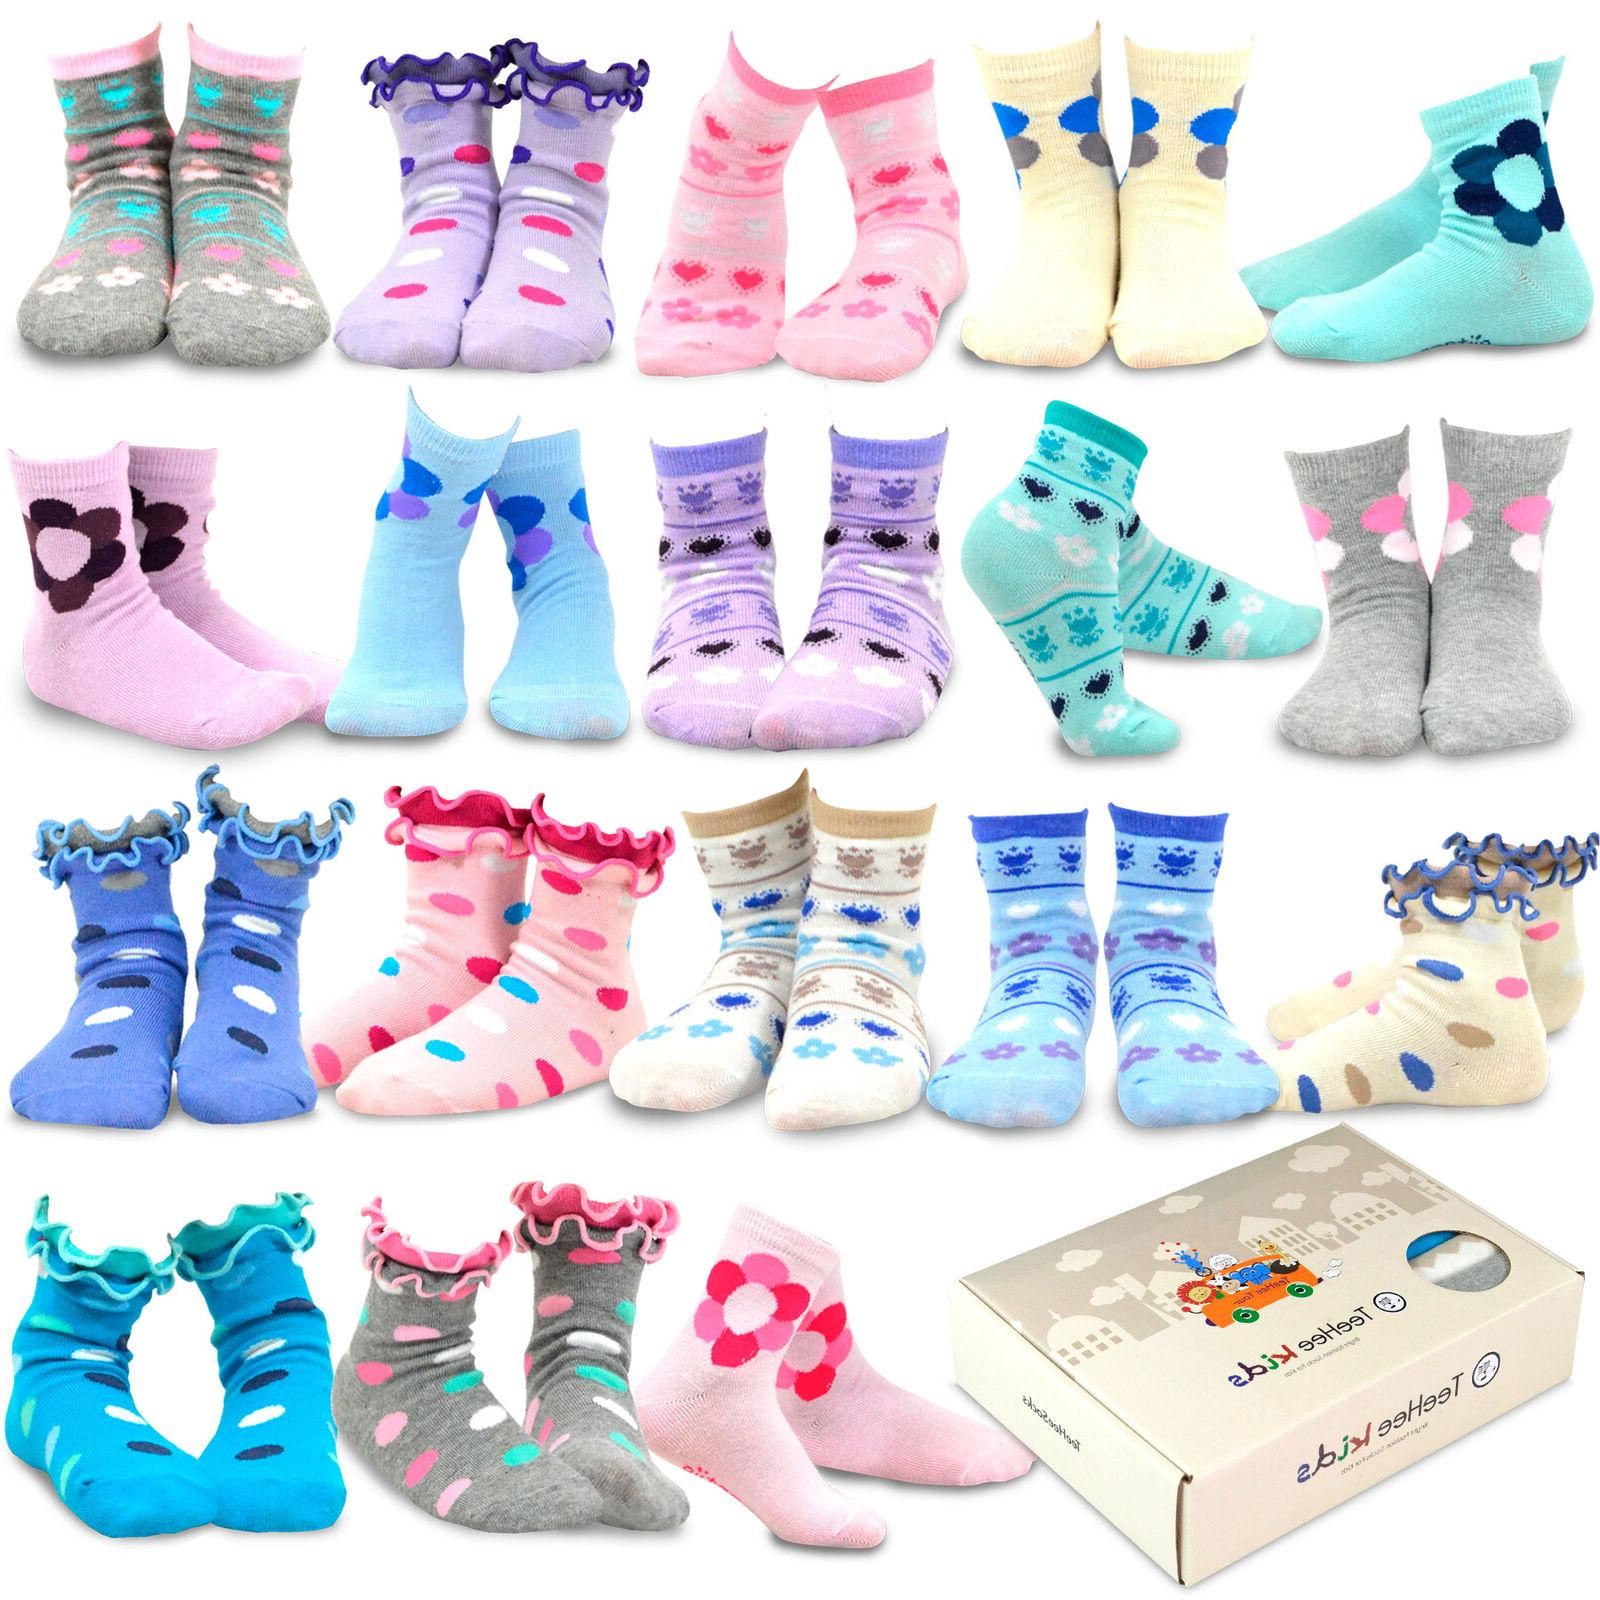 TeeHee Kids Girls Fashion Fun Crew 18 Pair Pack Gift Box  Cu